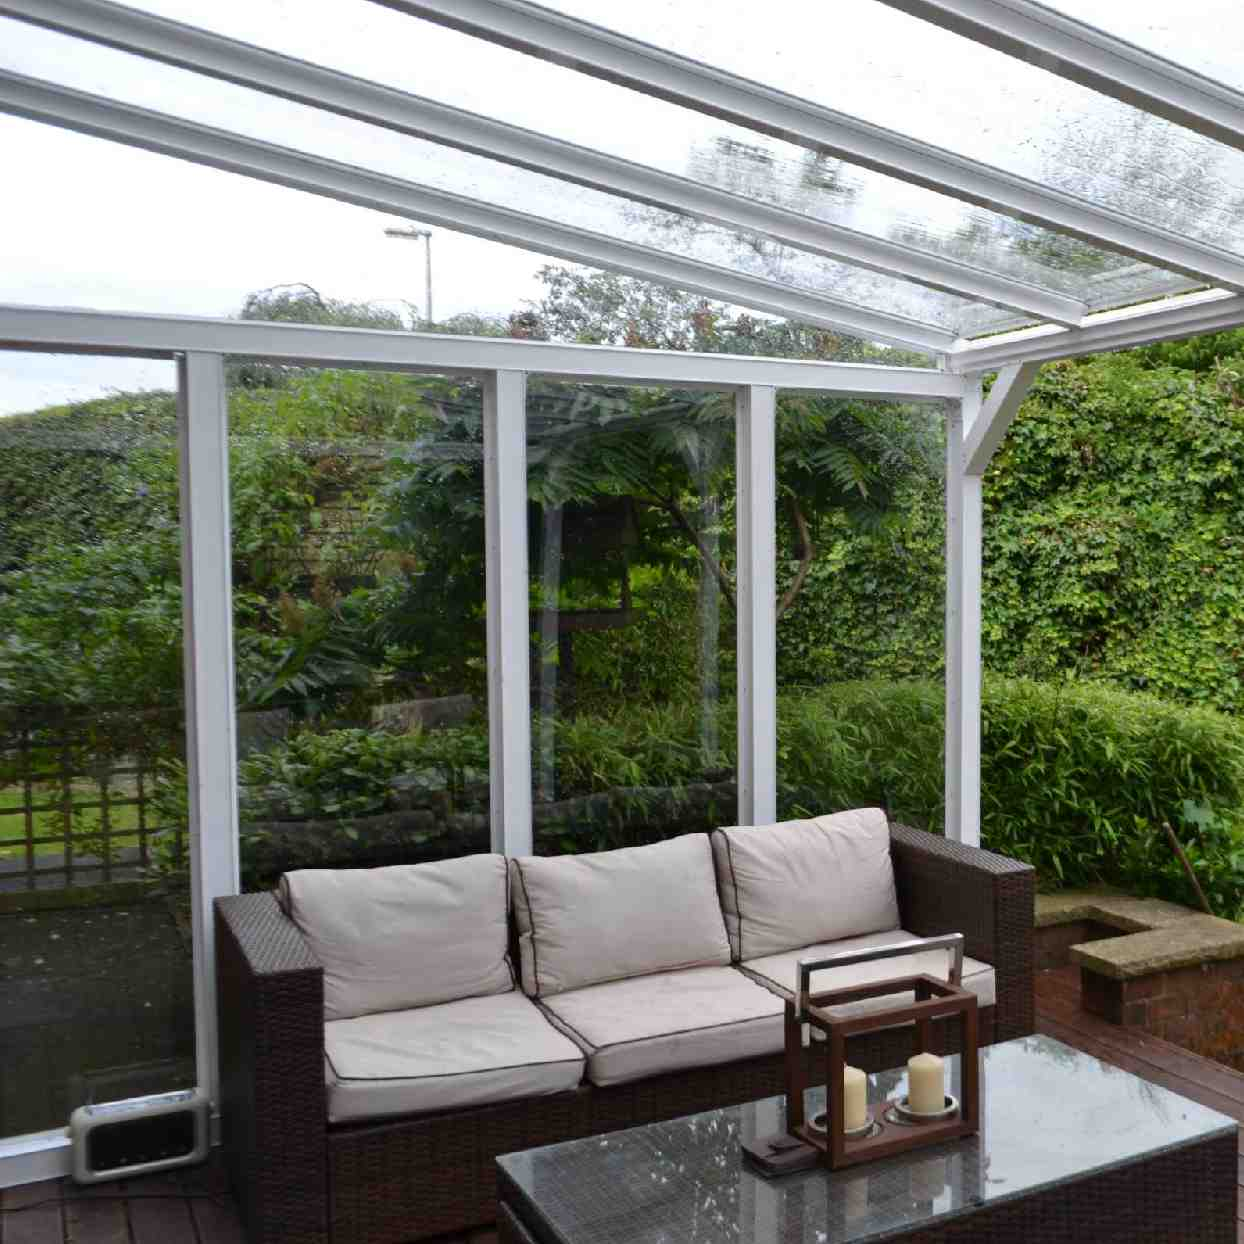 Buy Omega Verandah with 6mm Glass Clear Plate Polycarbonate Glazing - 6.3m (W) x 3.0m (P), (4) Supporting Posts online today